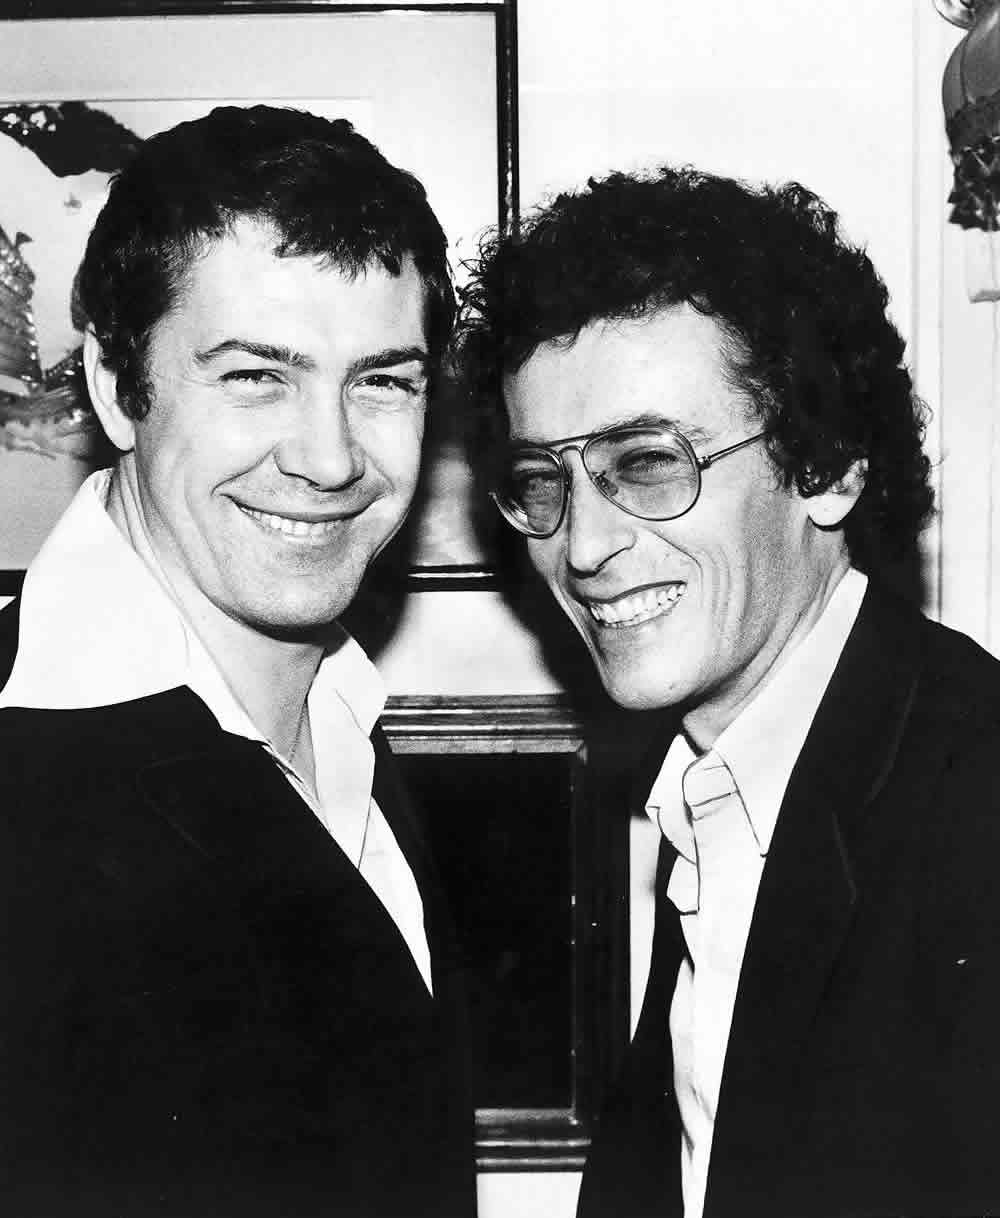 Salford actor Robert Powell, right, with Lewis Collins, February 1981